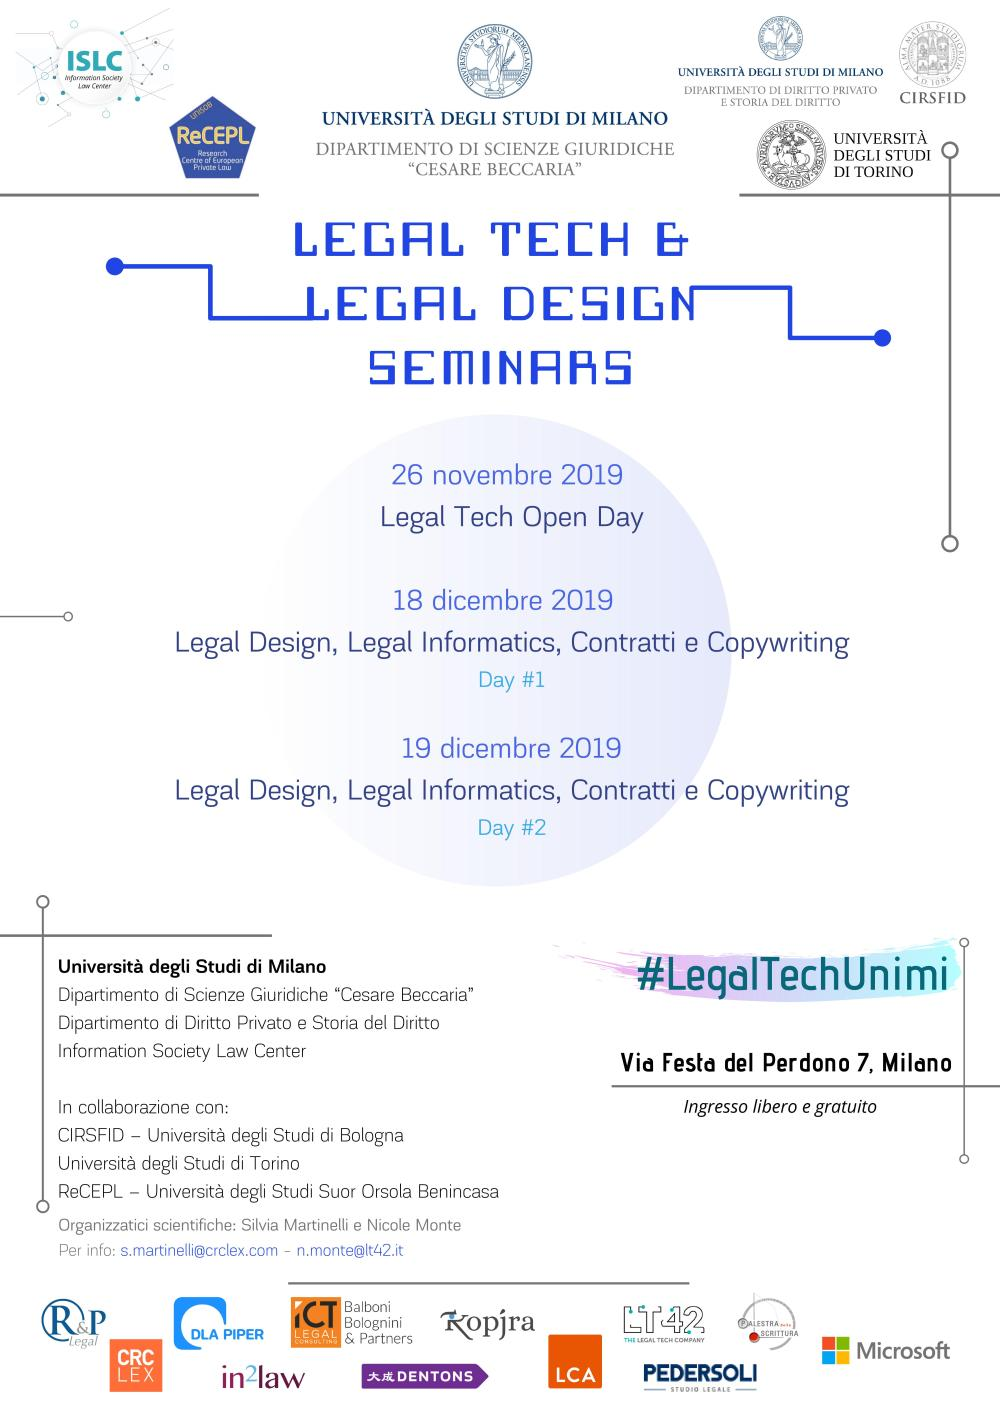 1. Legal Tech & Legal Design Seminars